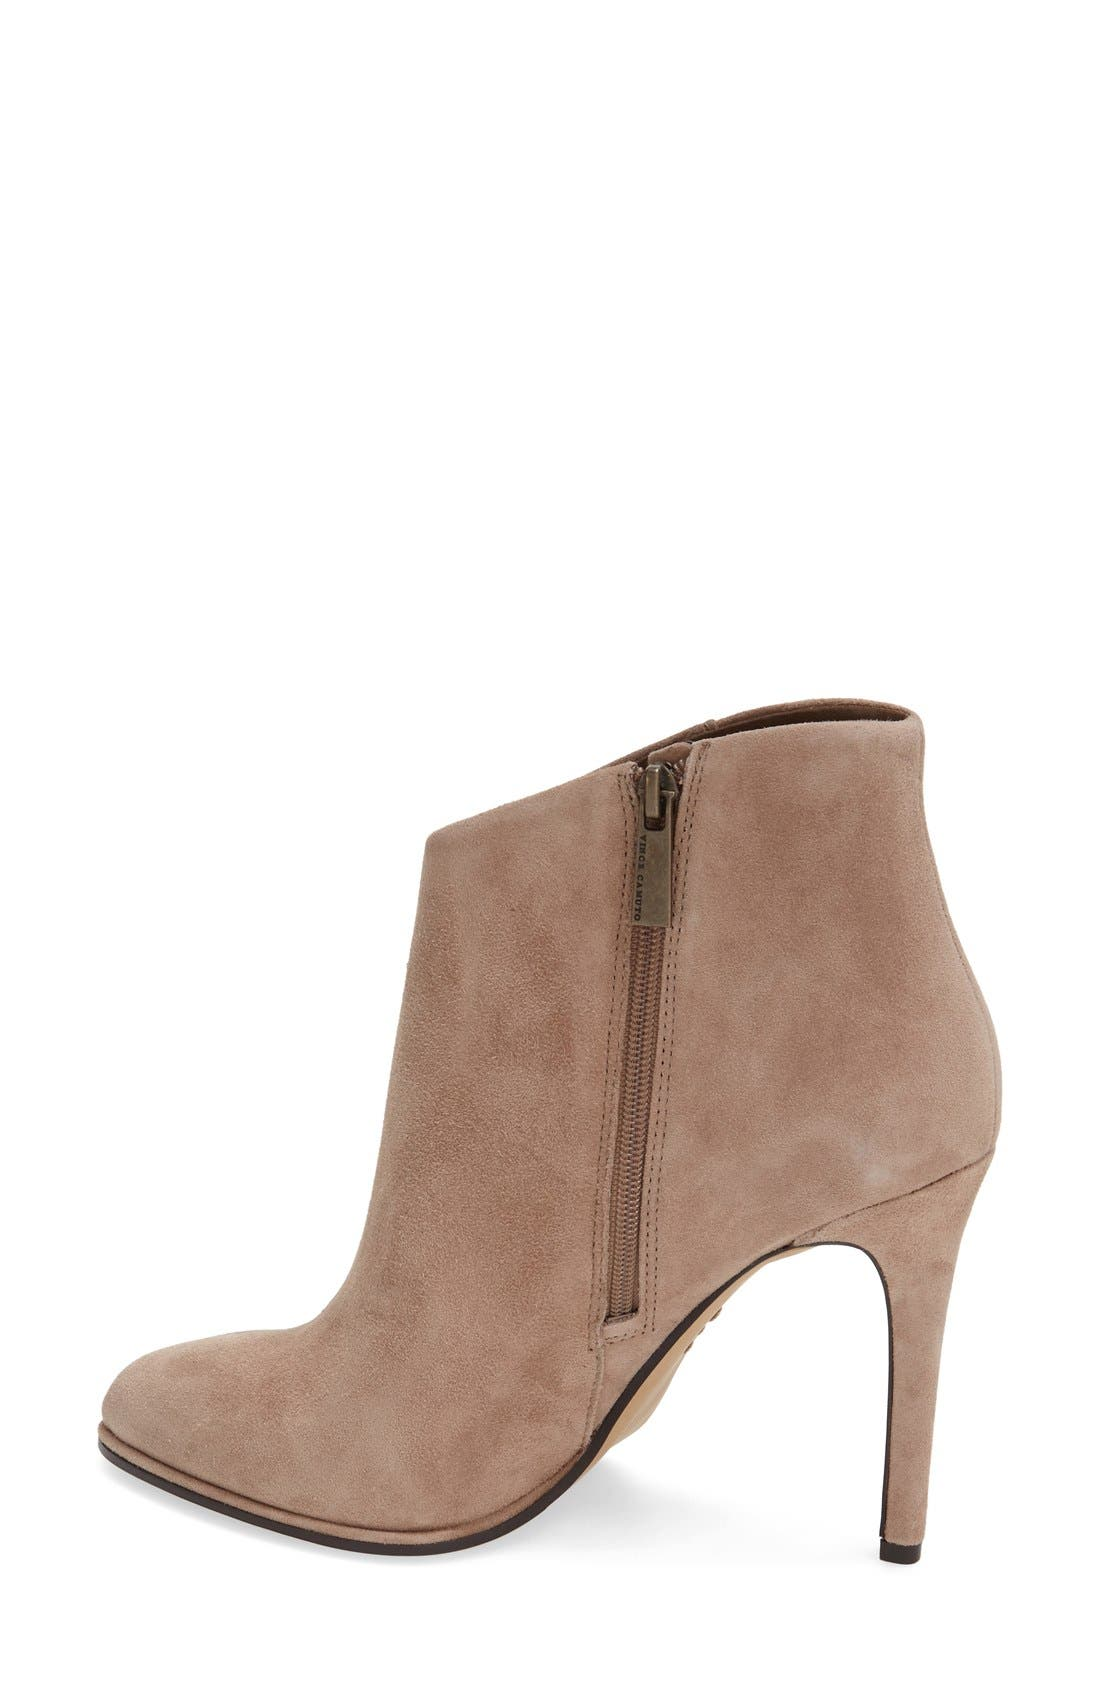 Alternate Image 2  - Vince Camuto 'Lorenza' Pointy Toe Bootie (Women)